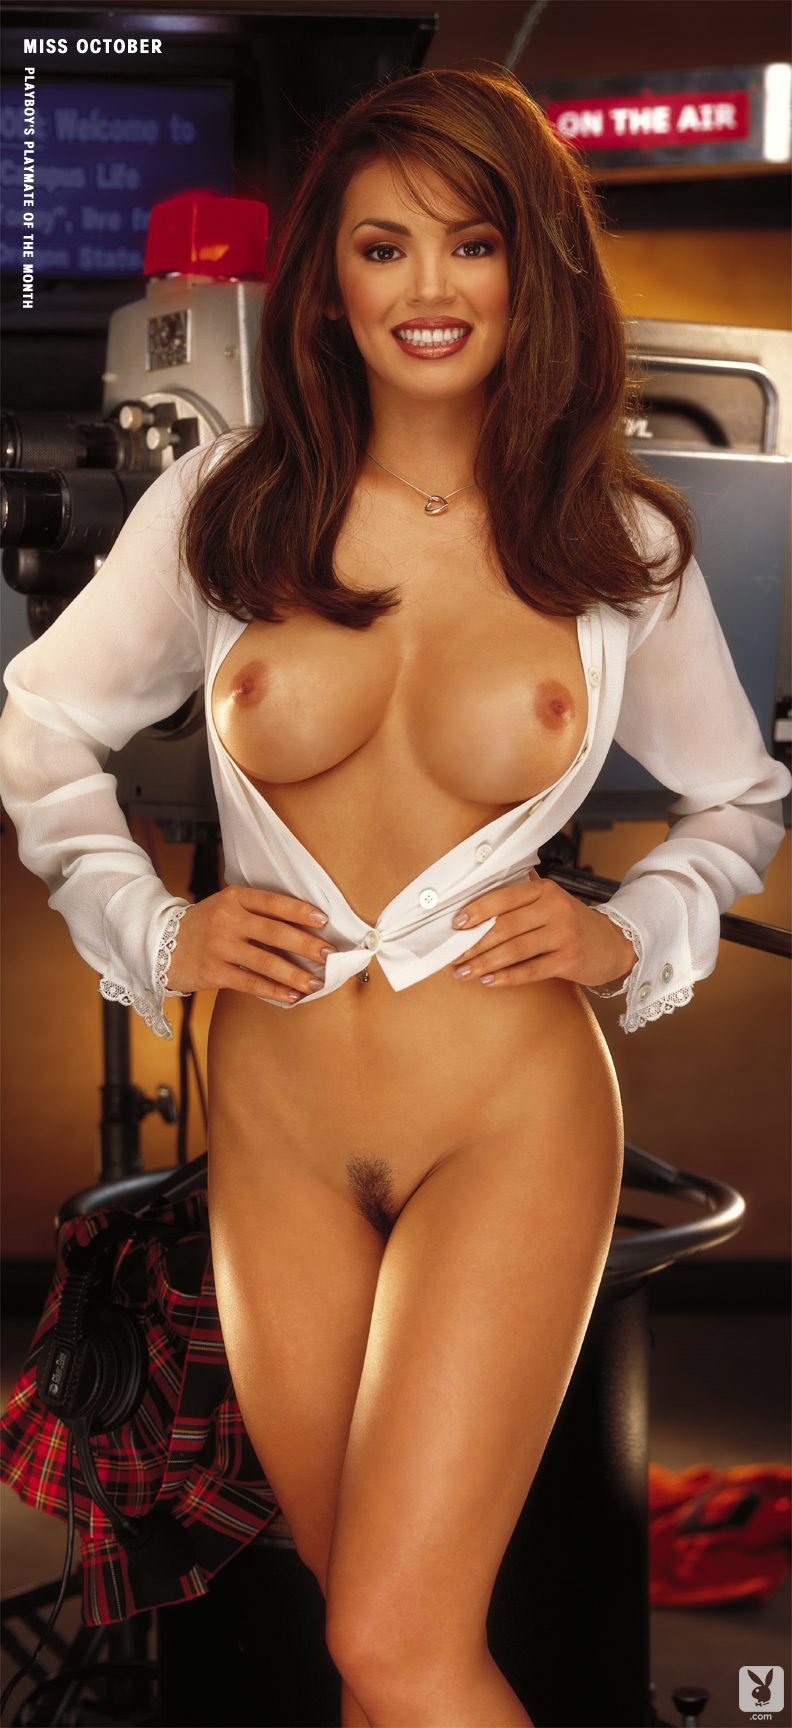 Jodi Ann Paterson - `Miss October & Playmate of the year 2000` - for PLAYBOY PLUS